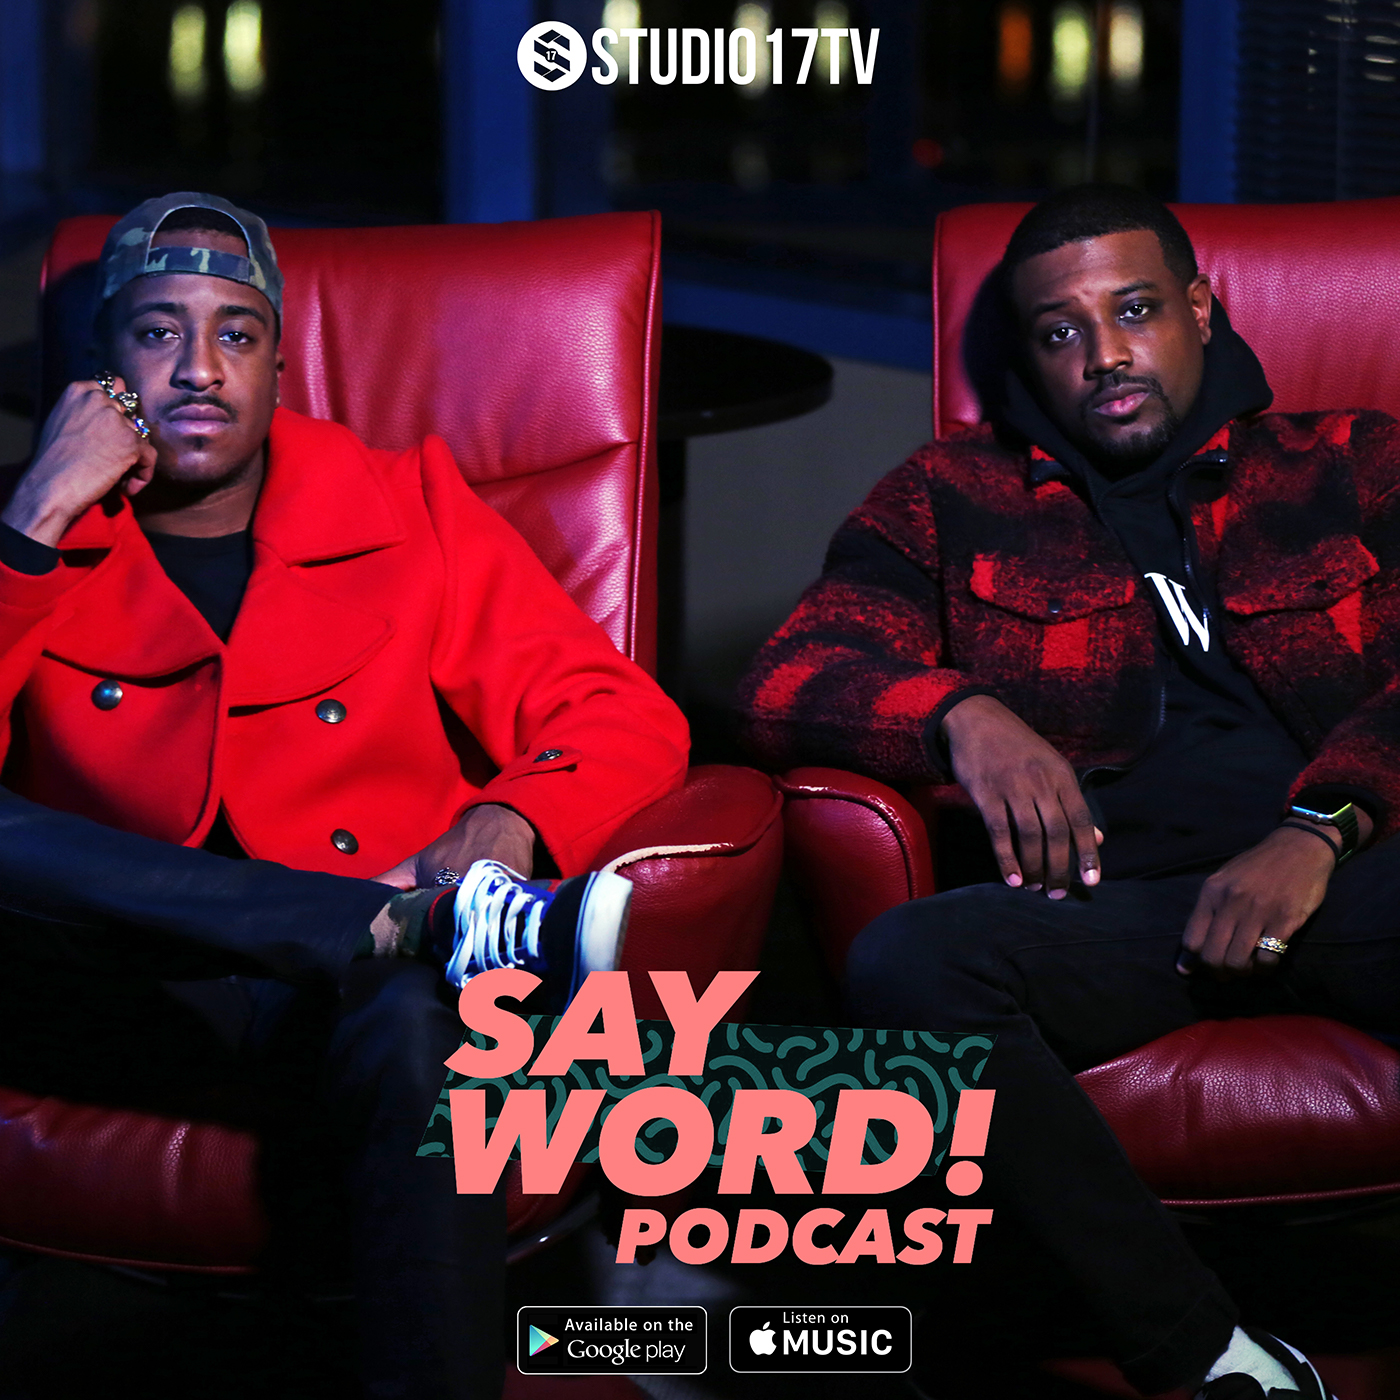 Say Word Podcast Cover.jpg